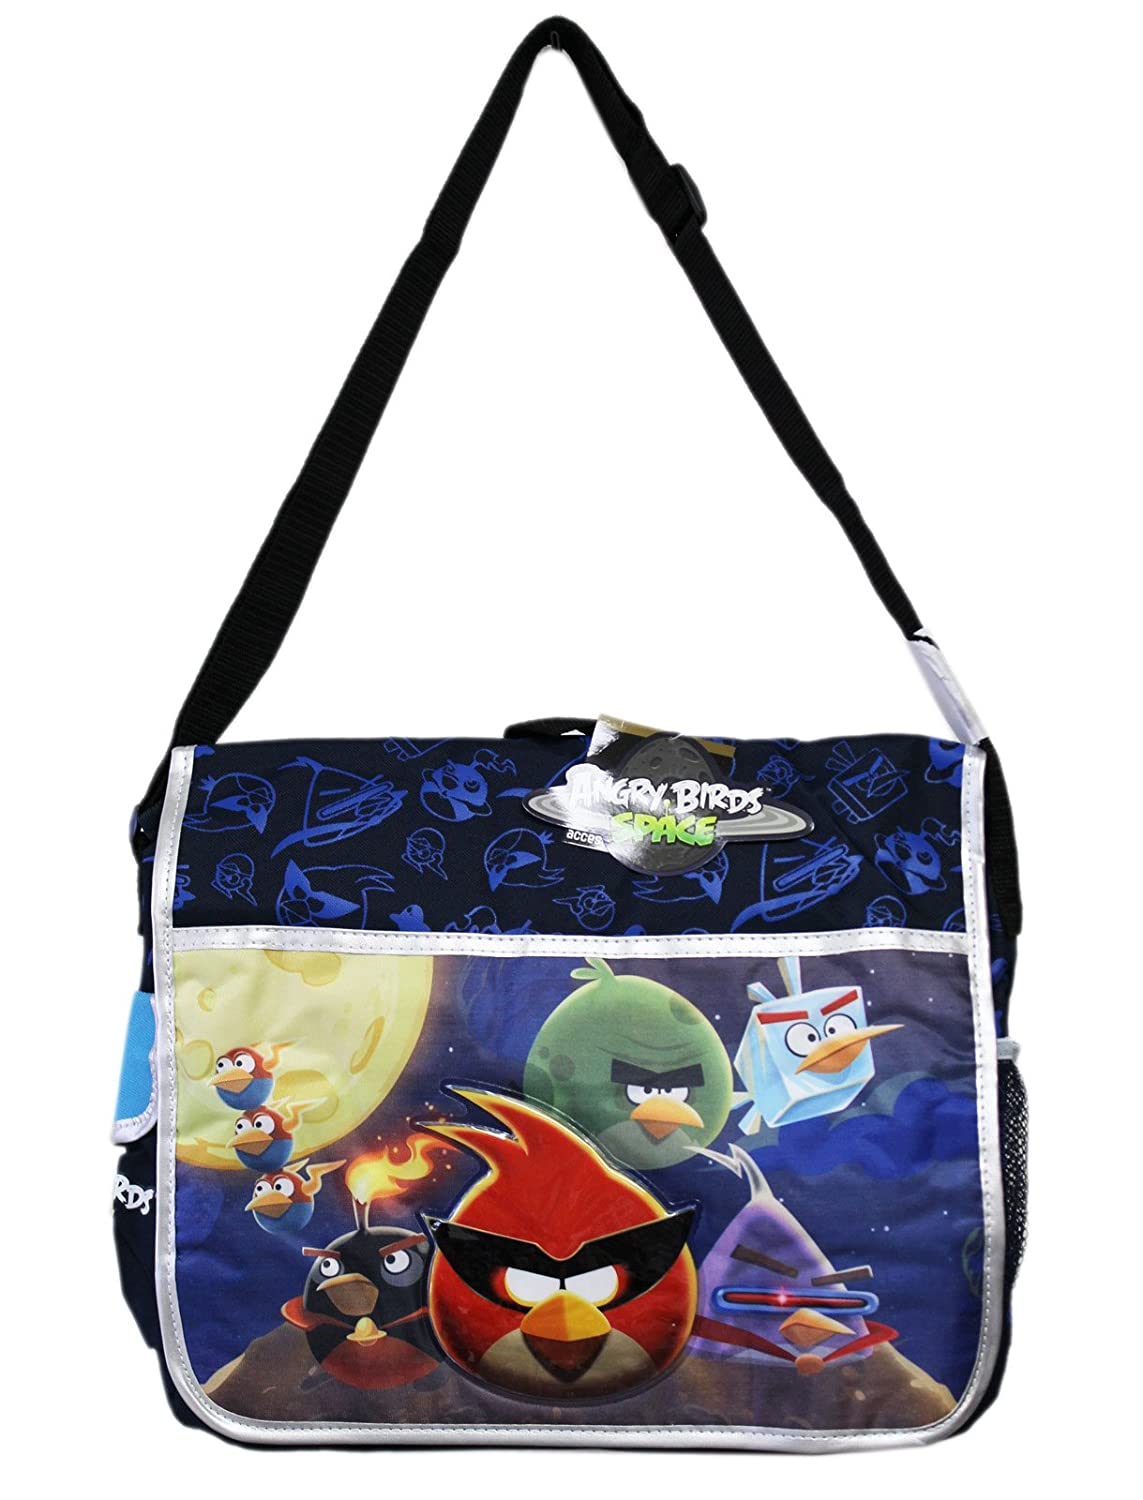 Angry Birds in Space Full Lineup Blue Colored Full Size Kids Messenger Bag